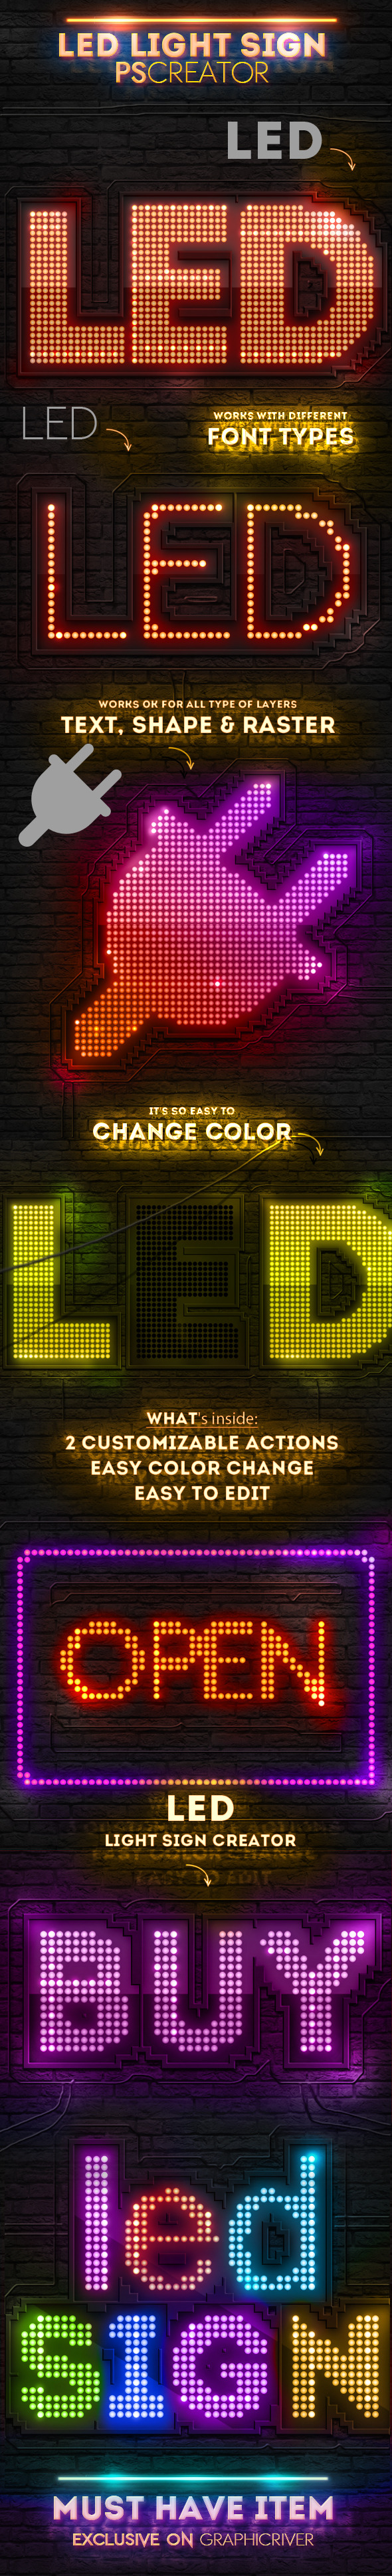 LED Lights Sign Photoshop Creator - Utilities Actions